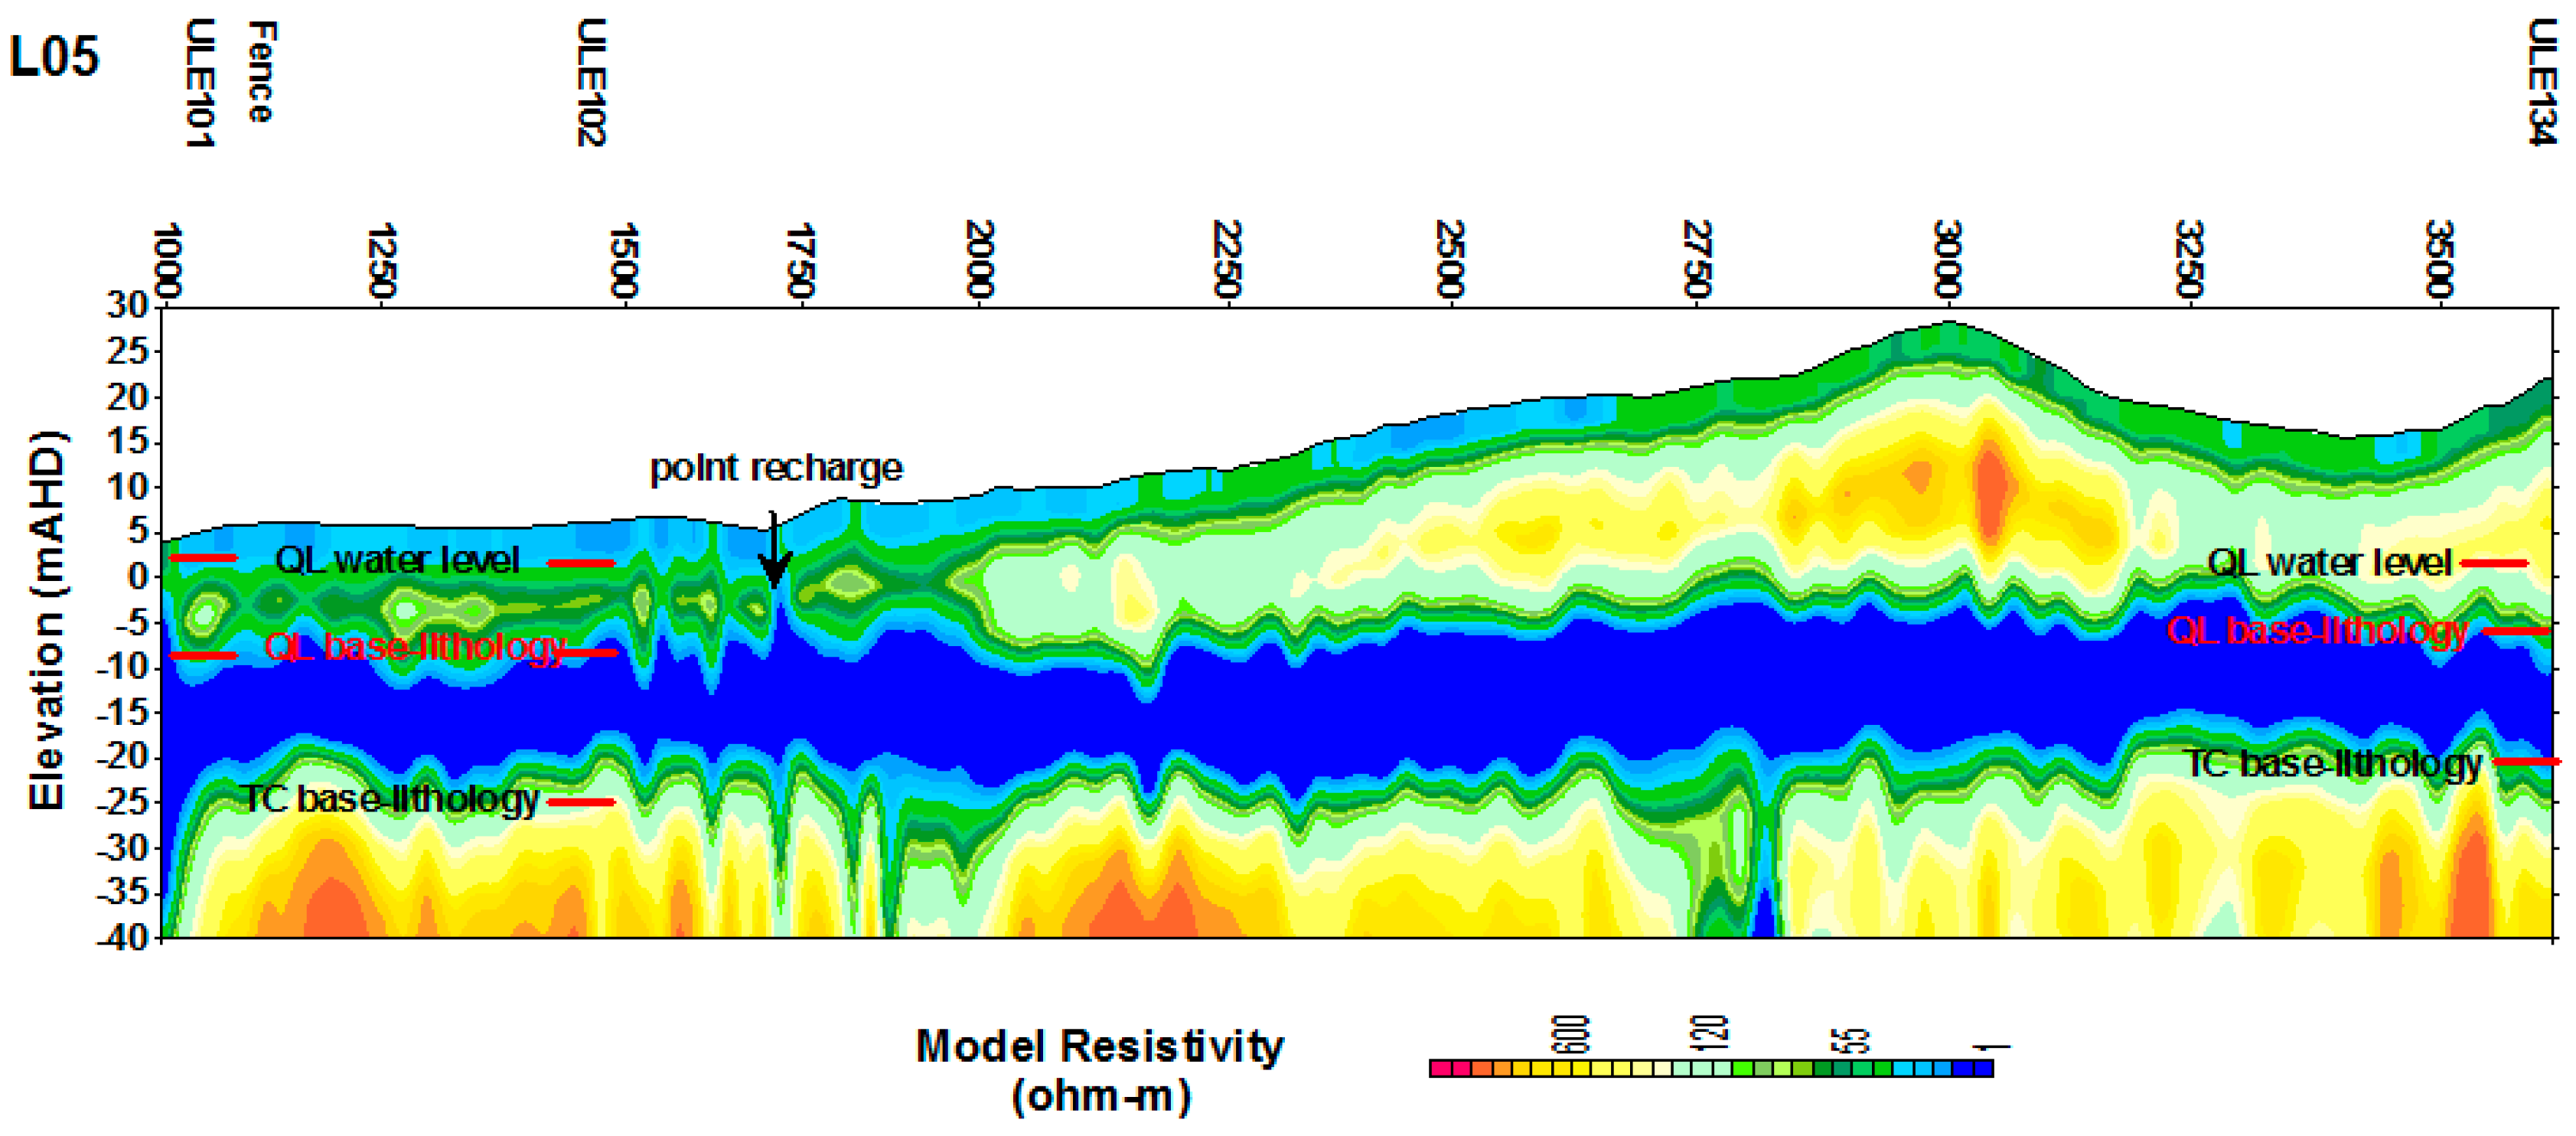 Geosciences Free Full Text Geophysical Input To Improve The Wiring Diagram 2000 National Tropical 08 00226 G012